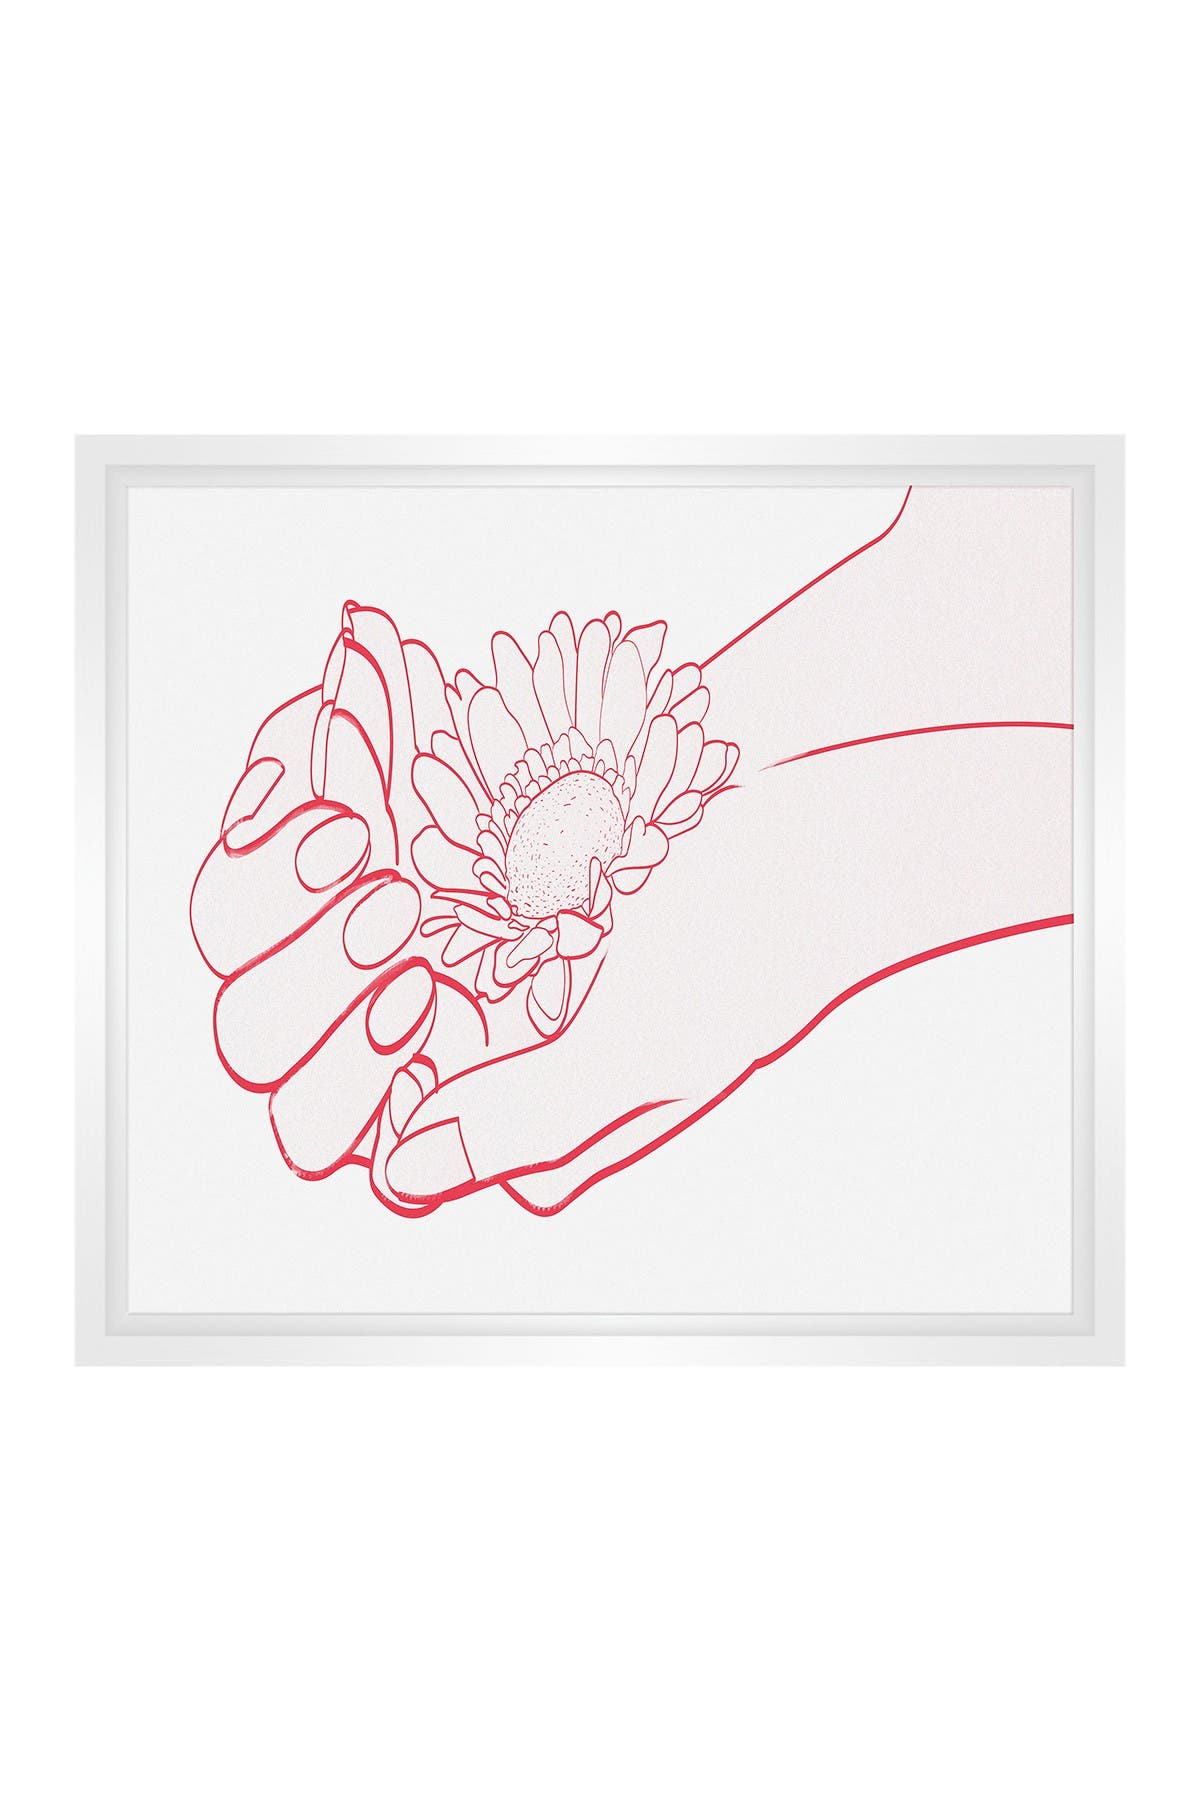 Image of PTM Images Small Line Drawing #14 Rectangle Canvas